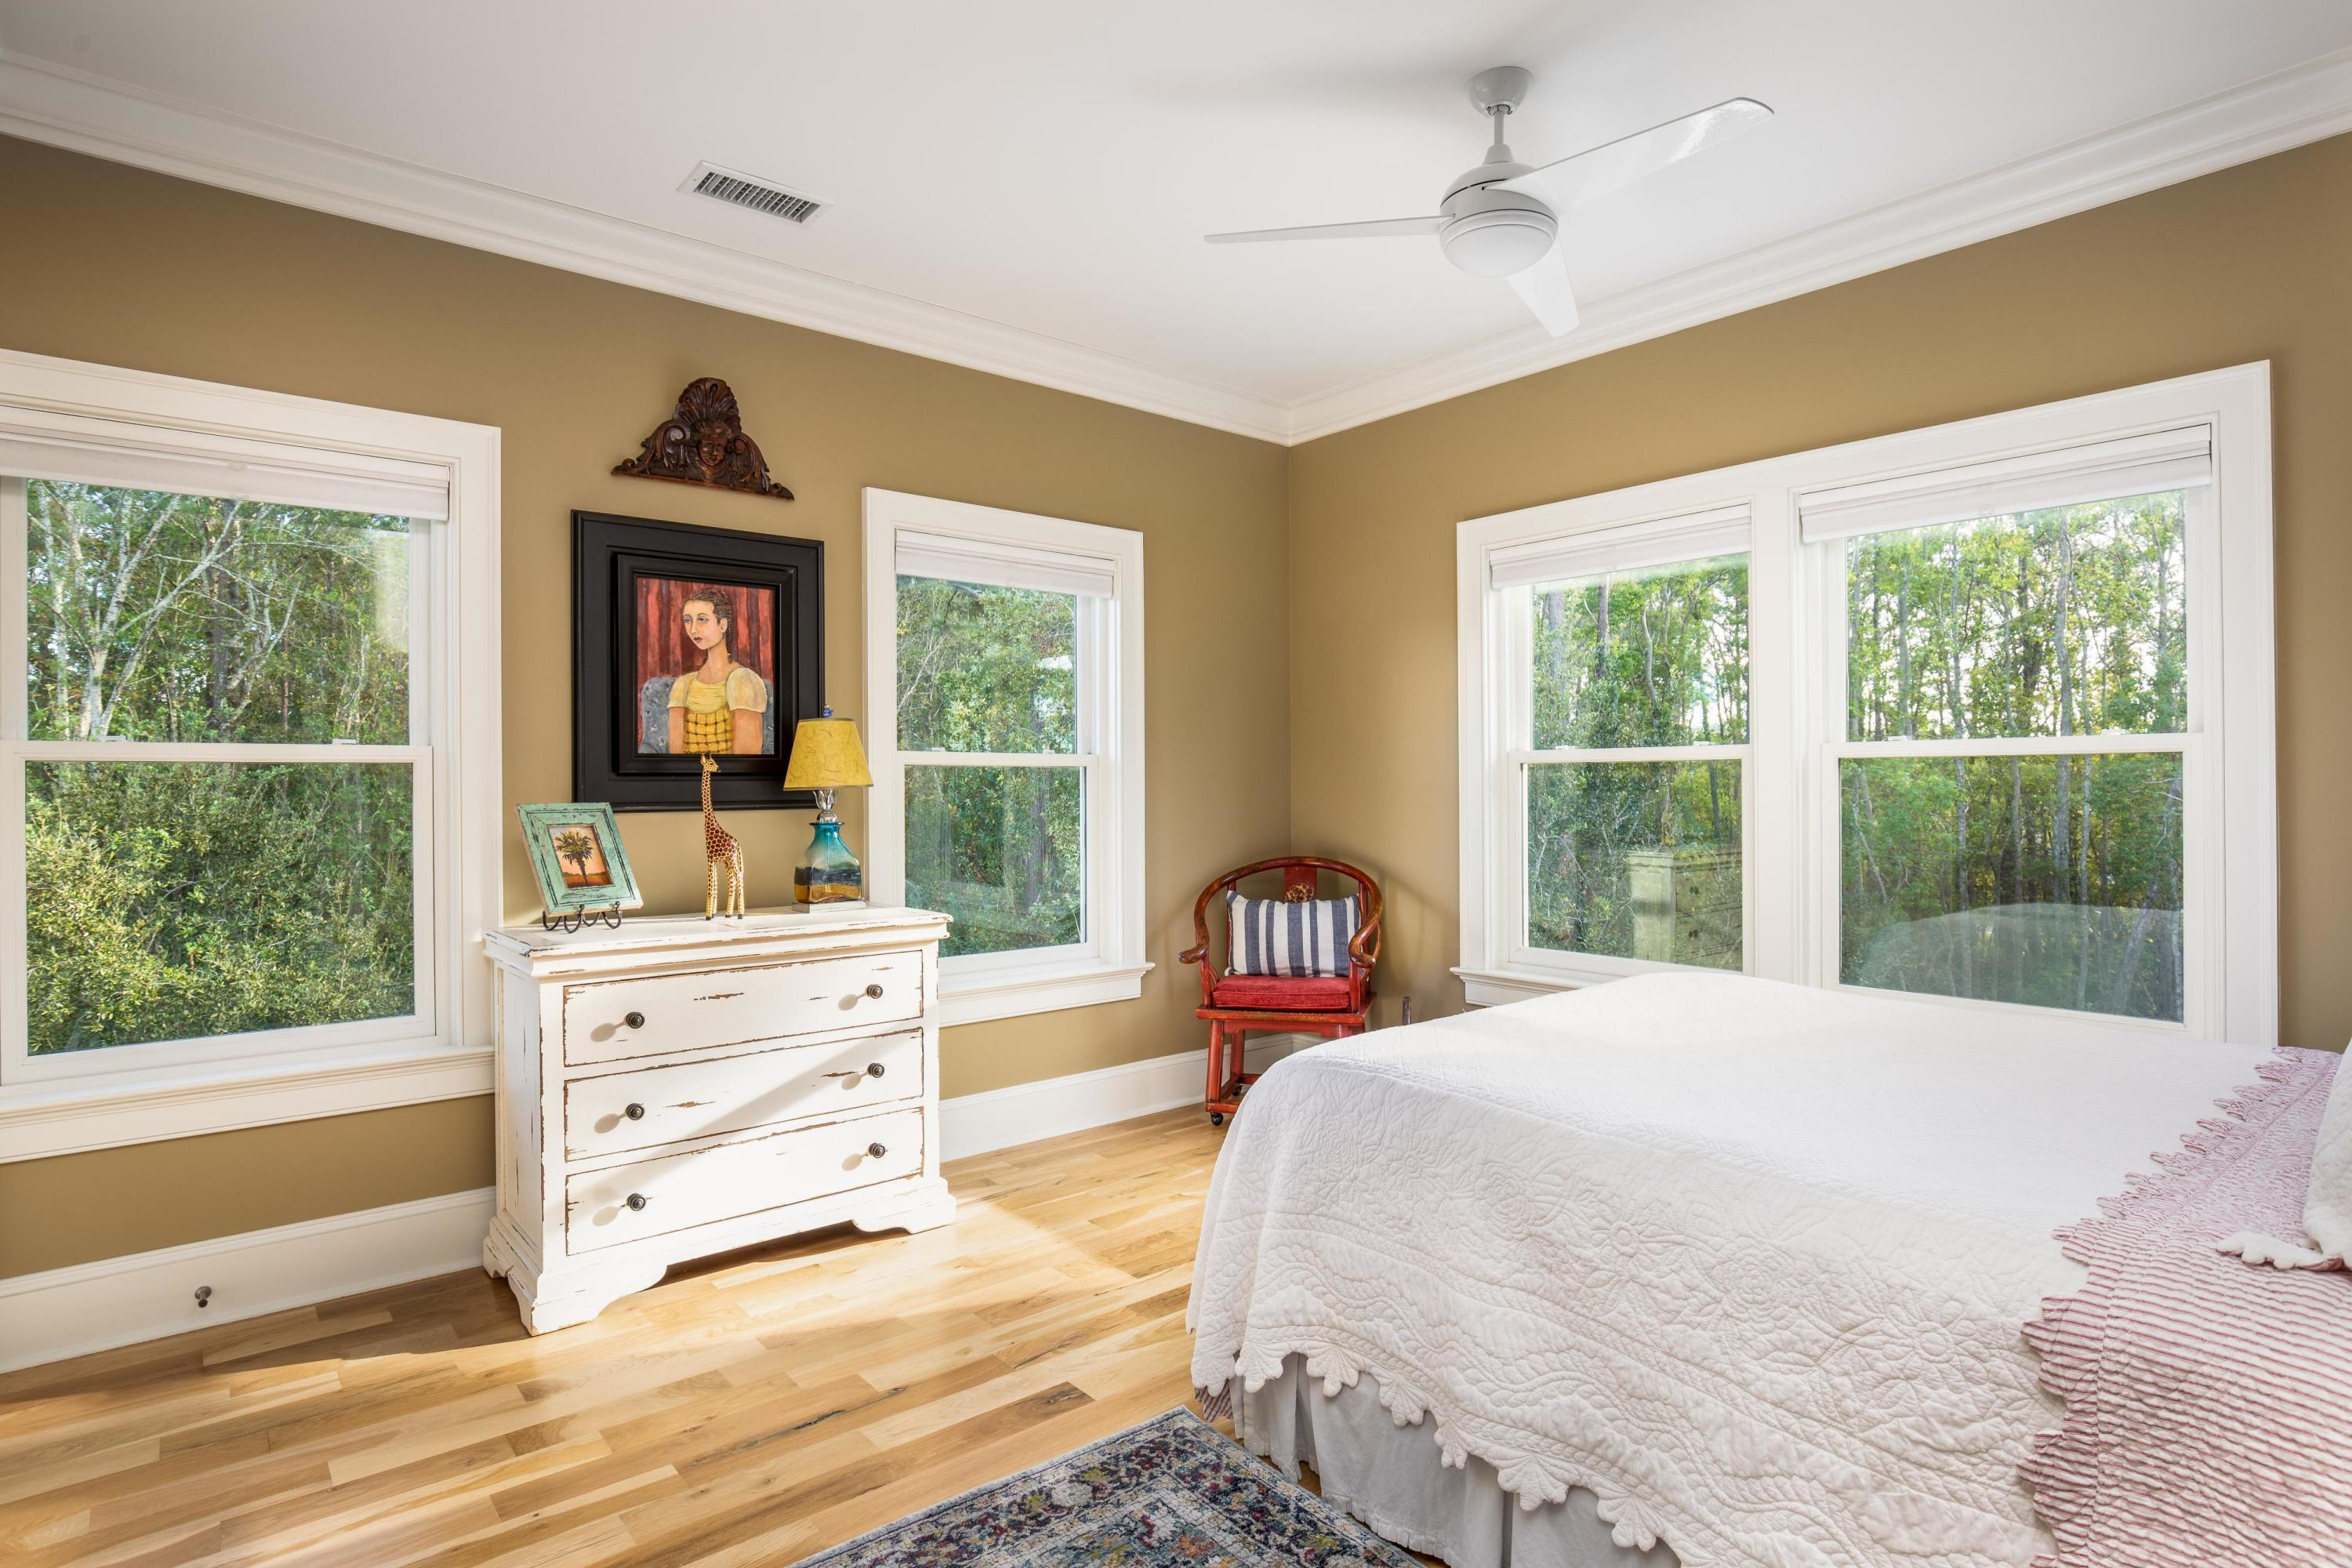 Rivertowne On The Wando Homes For Sale - 2212 Hartfords Bluff, Mount Pleasant, SC - 3